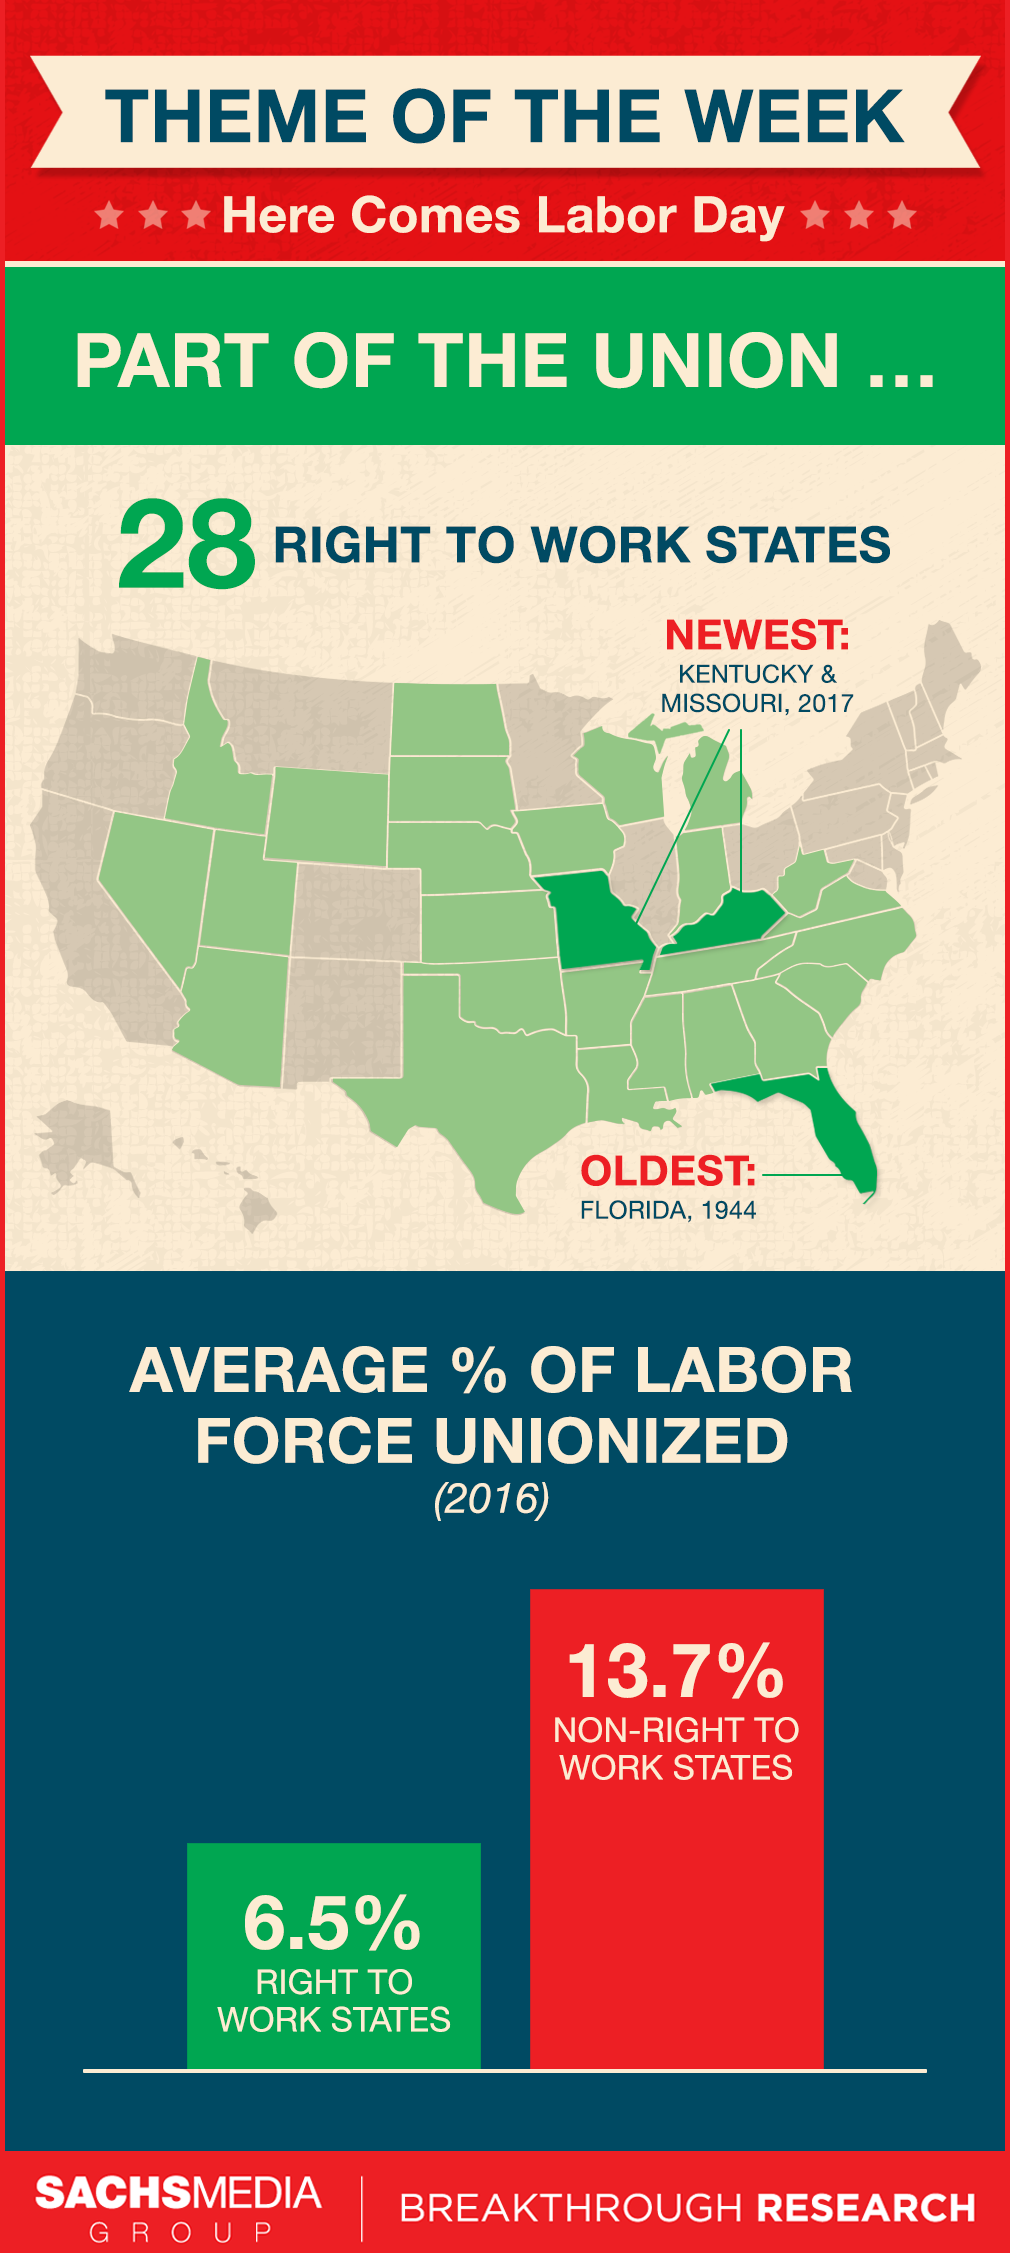 Right To Work States Vs Union States Map.Right To Work States 8 31 17 Florida Politics Campaigns